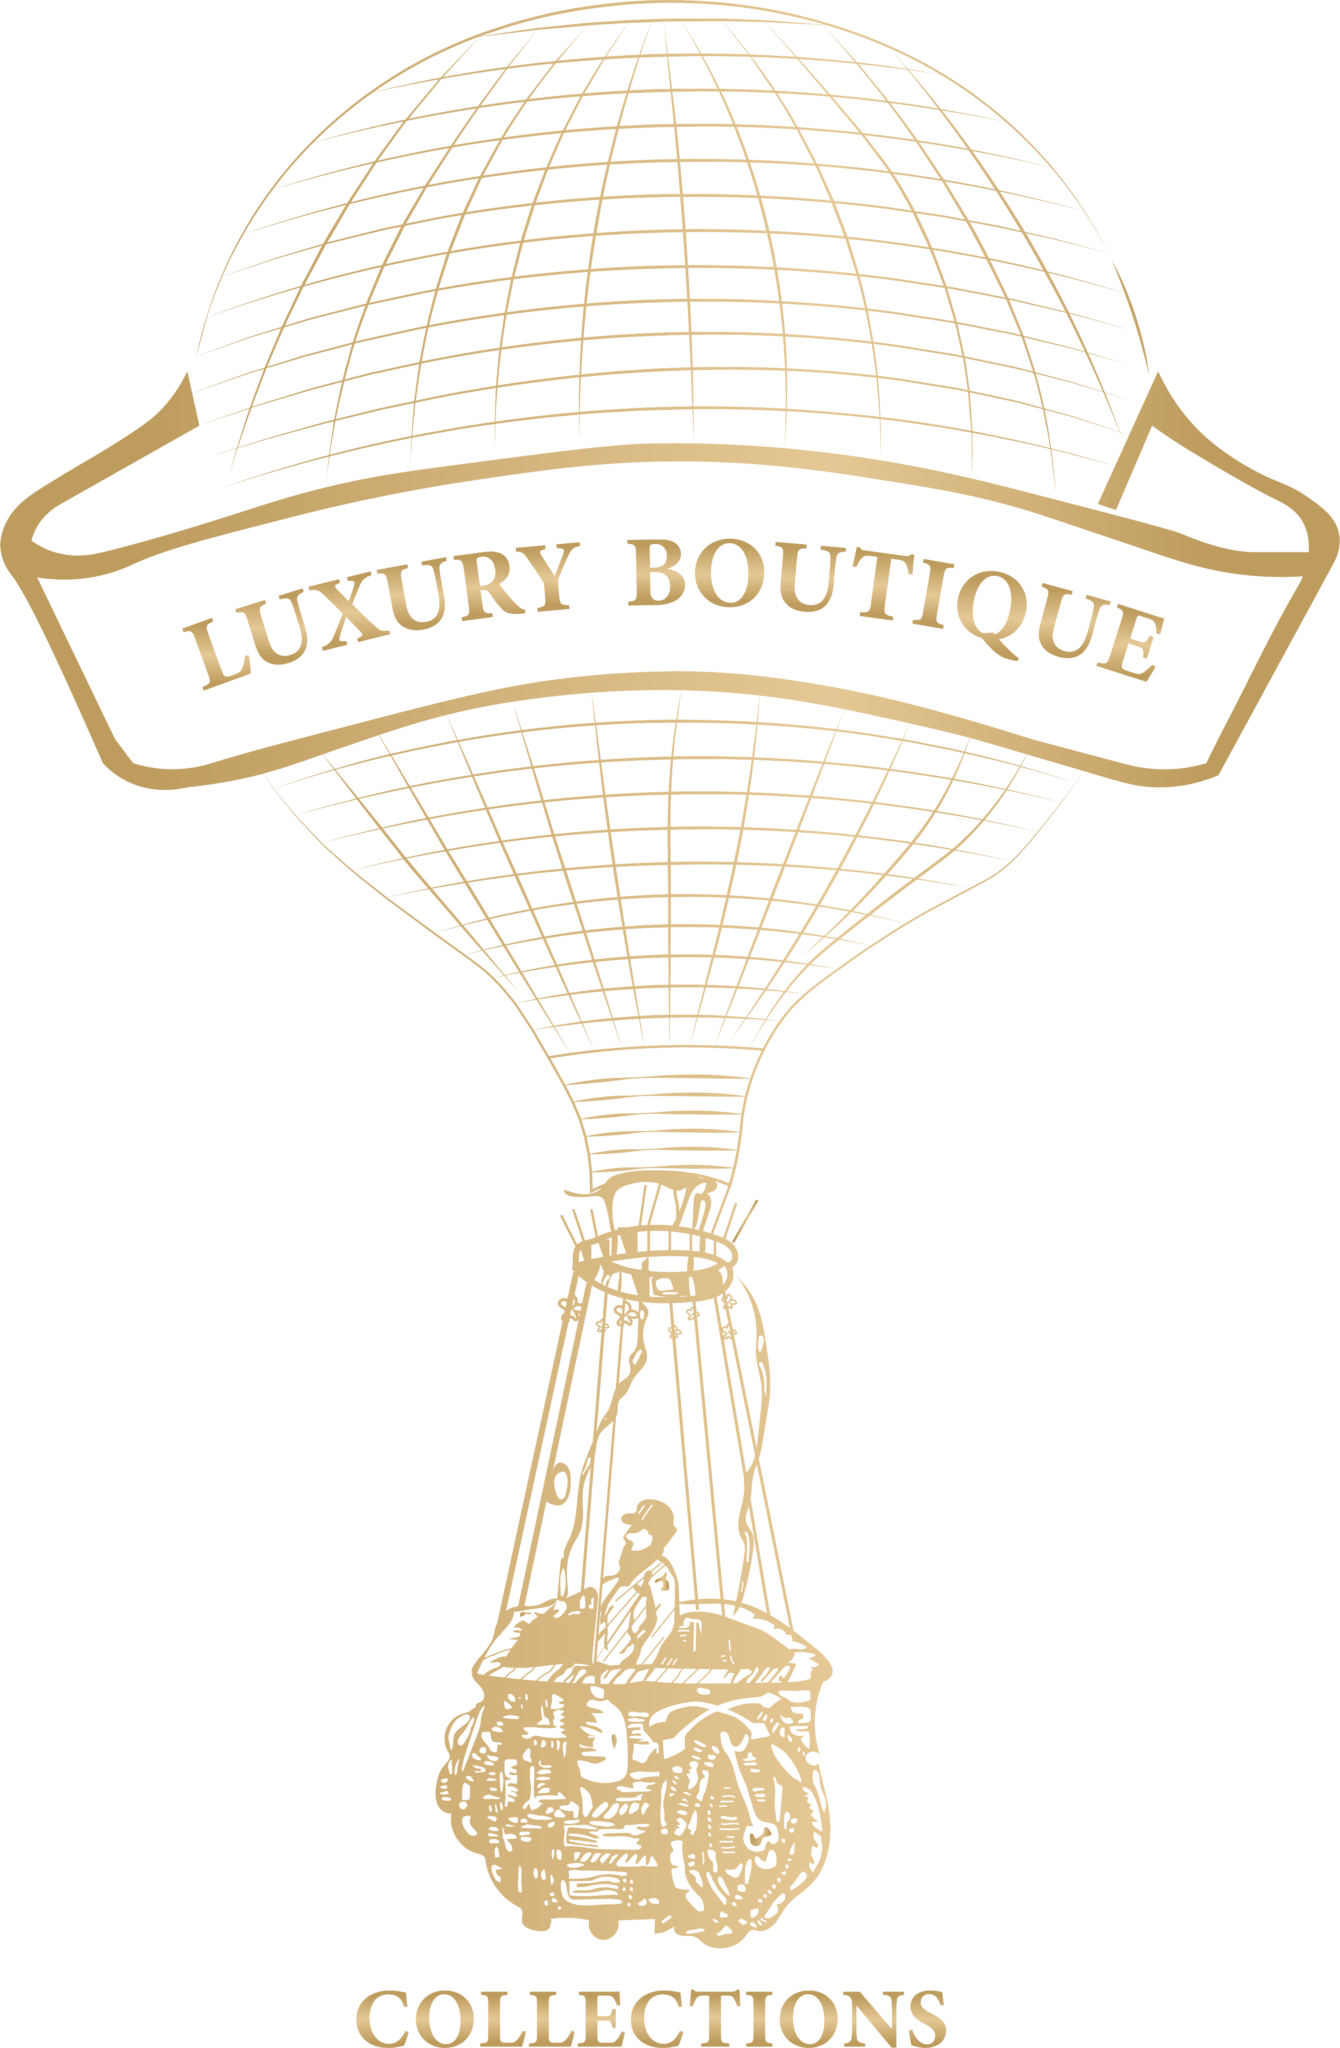 Luxury Boutique Collections